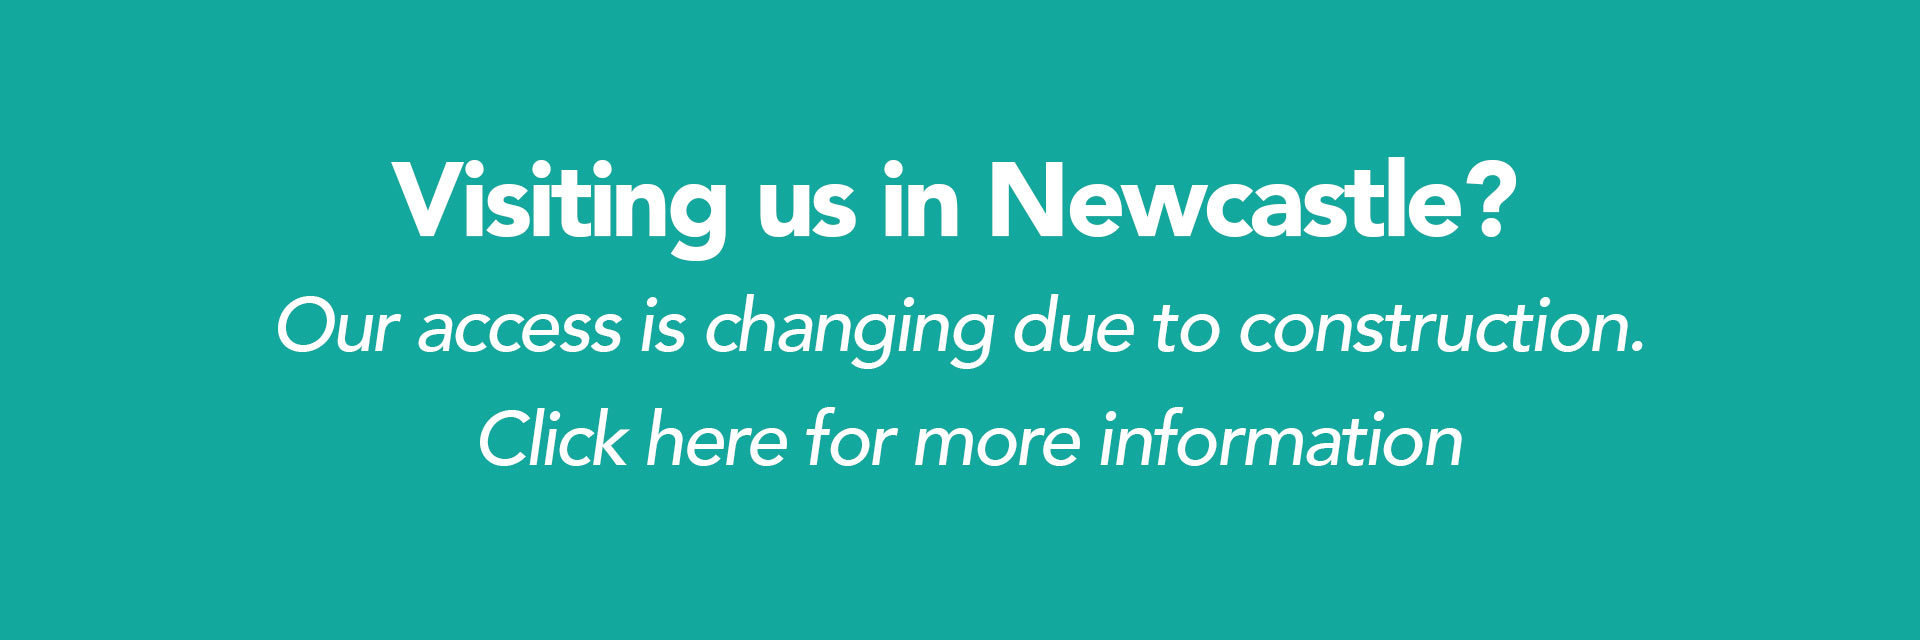 Newcastle traffic changes